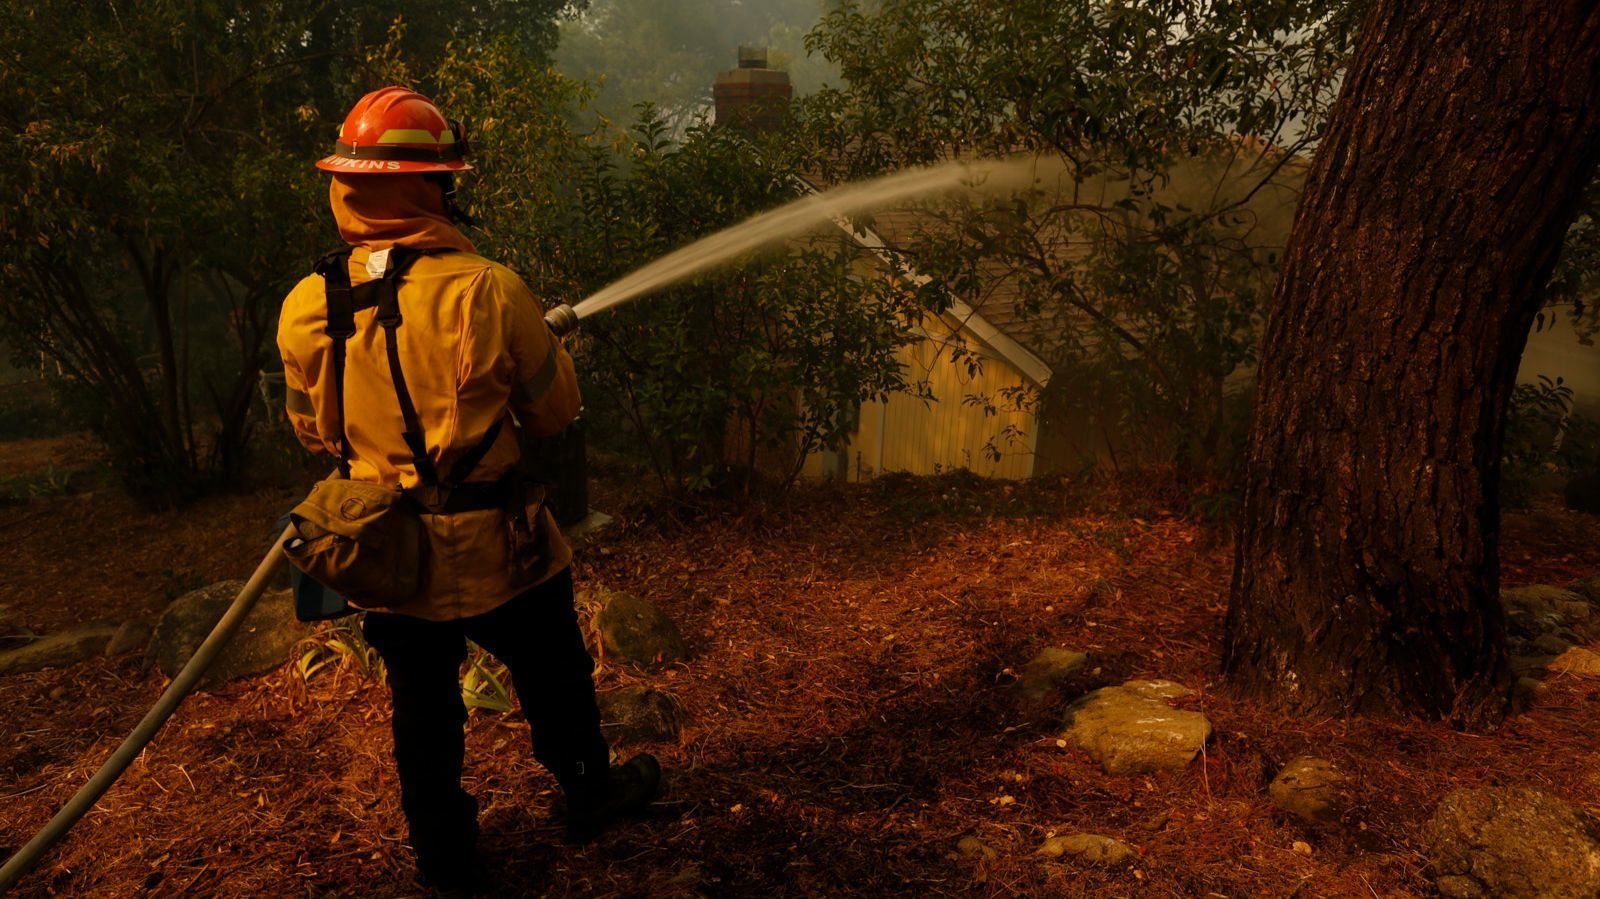 Los Angeles City firefighter Robert Hawkins hoses down a home to protect it from the La Tuna fire in Sunland.